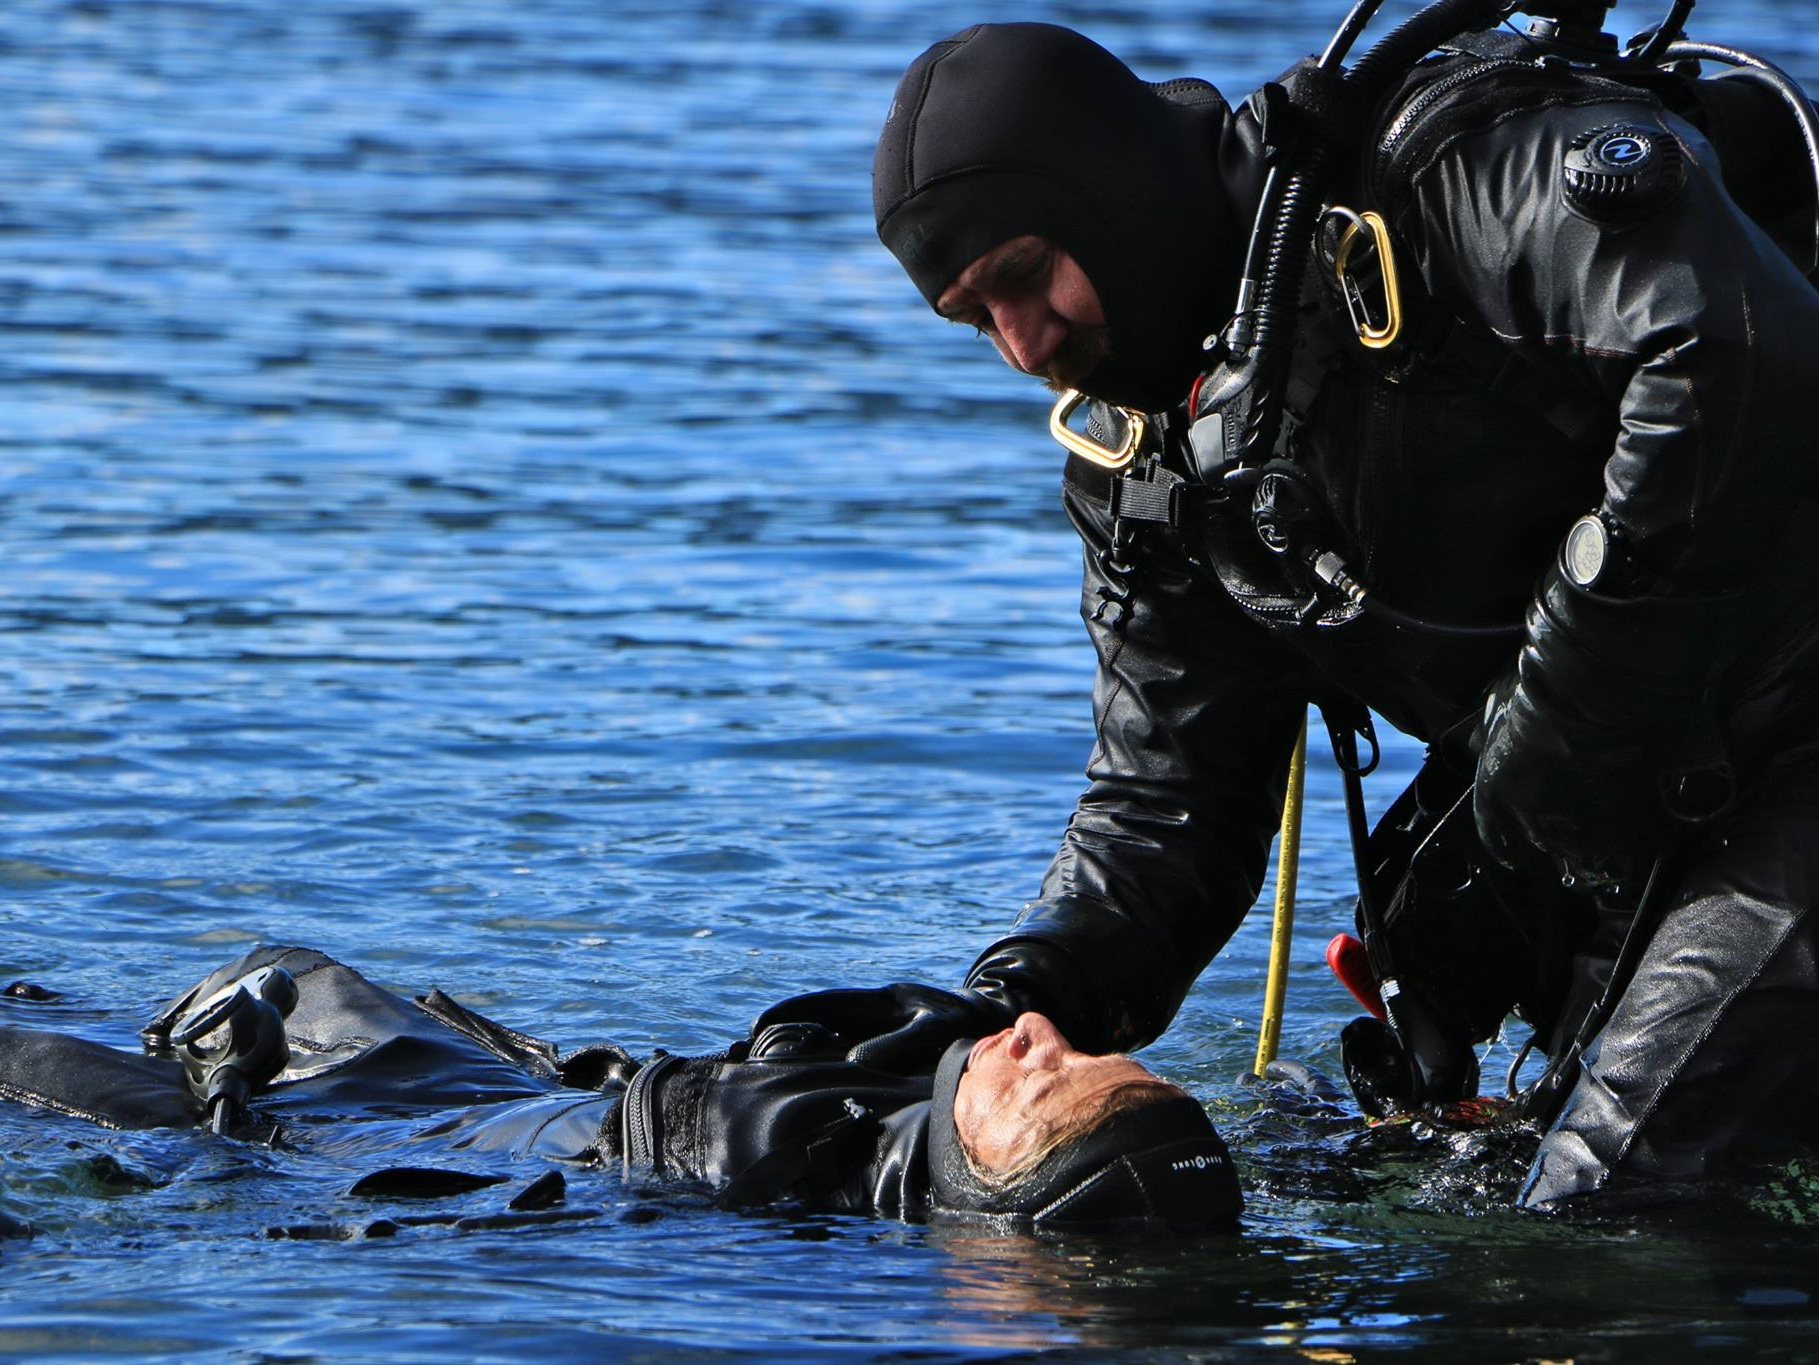 Step 3 - Open Water Training - To Train you in diver rescue techniques and problem solving skills To help build your confidence to respond when faced with a diver emergency